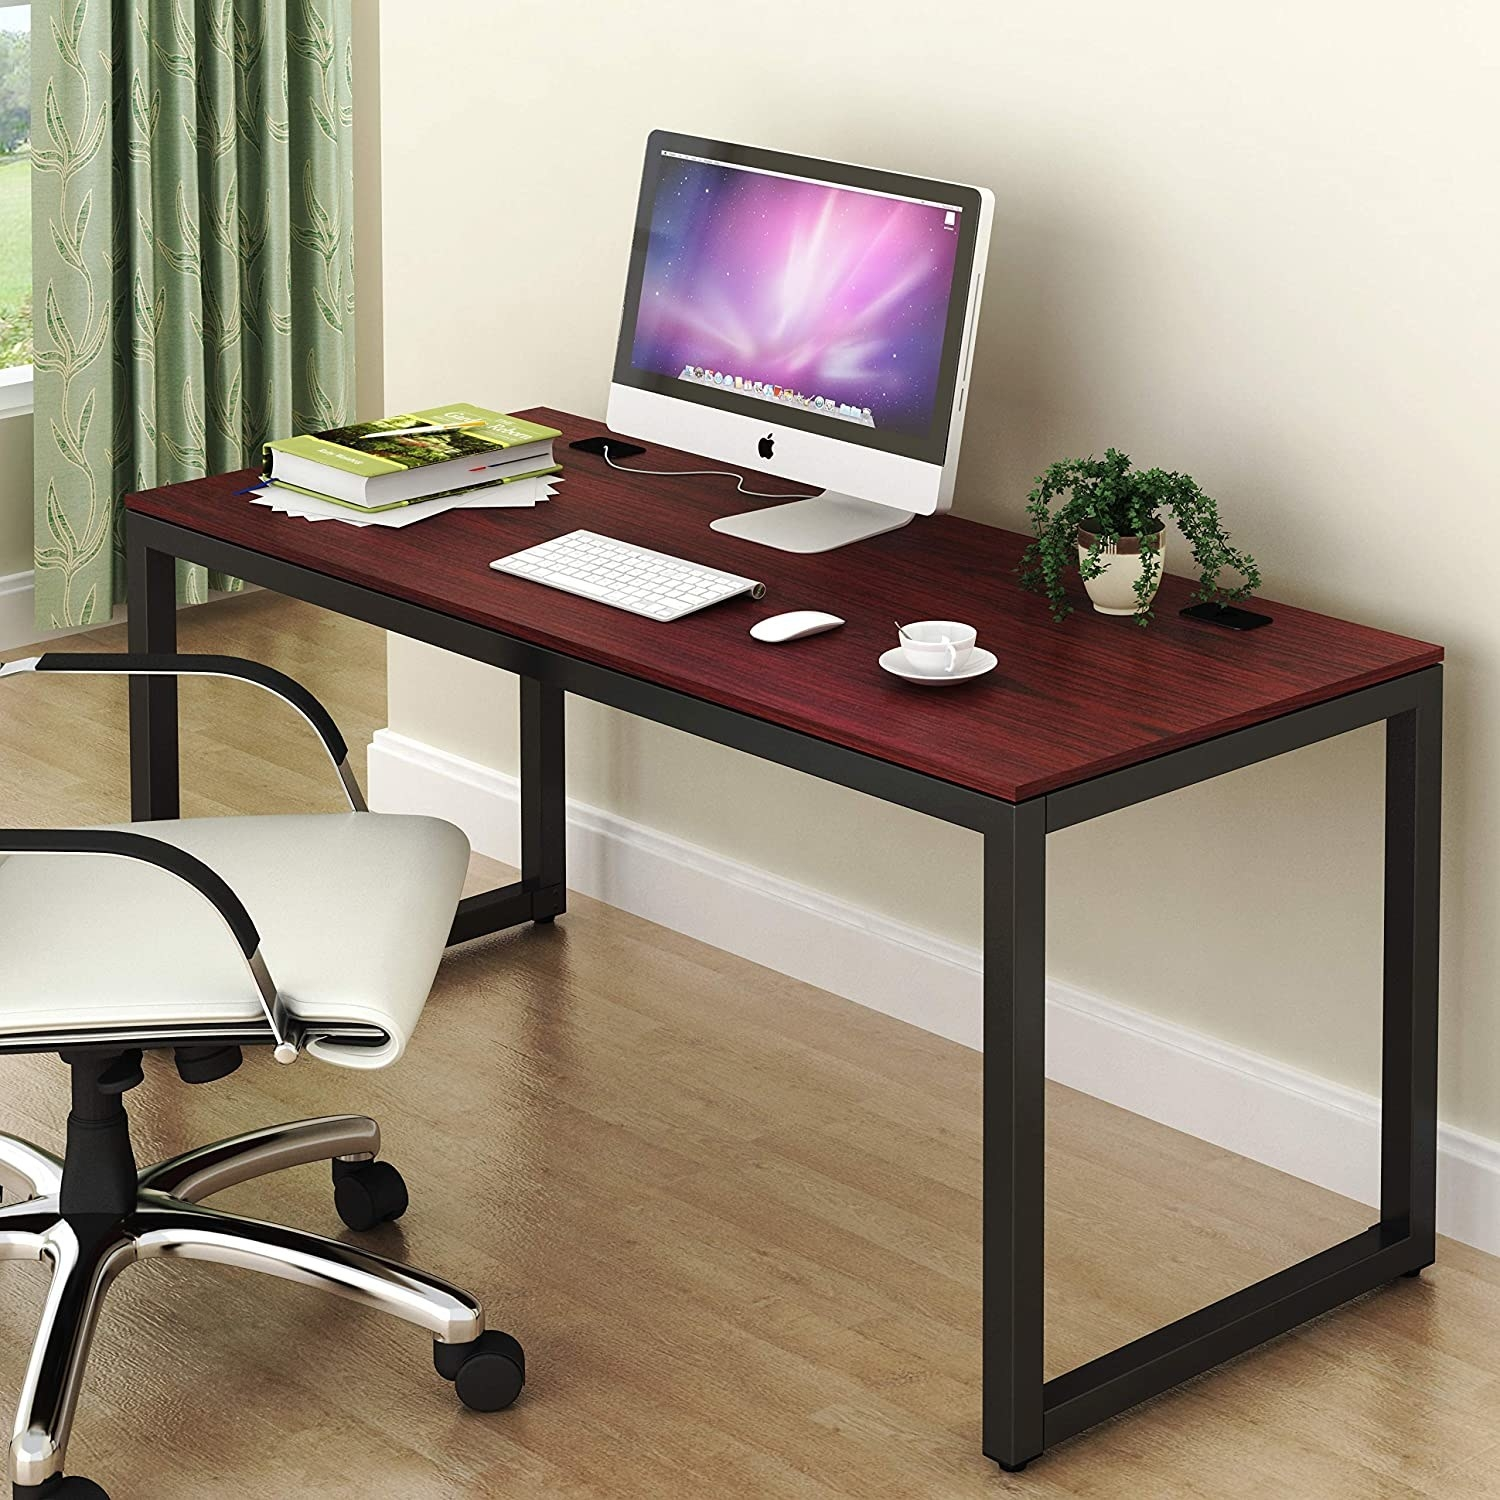 Cherry wood-like top desk with black legs with a computer on top of it